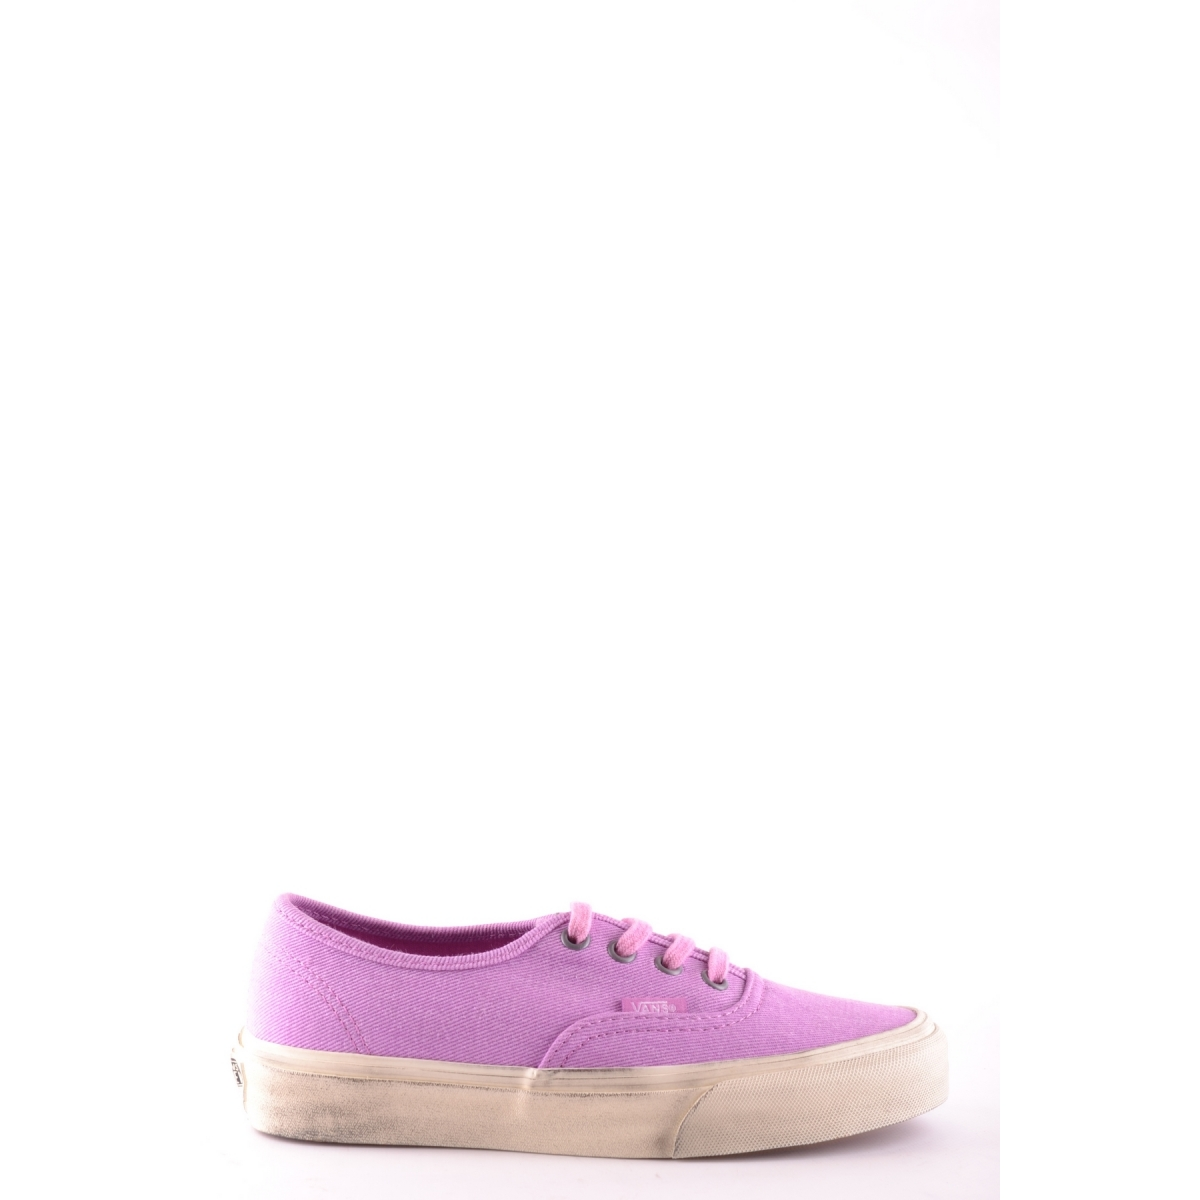 Sneakers basse Vans 23786IT 23786IT 23786IT -40 6d7eca